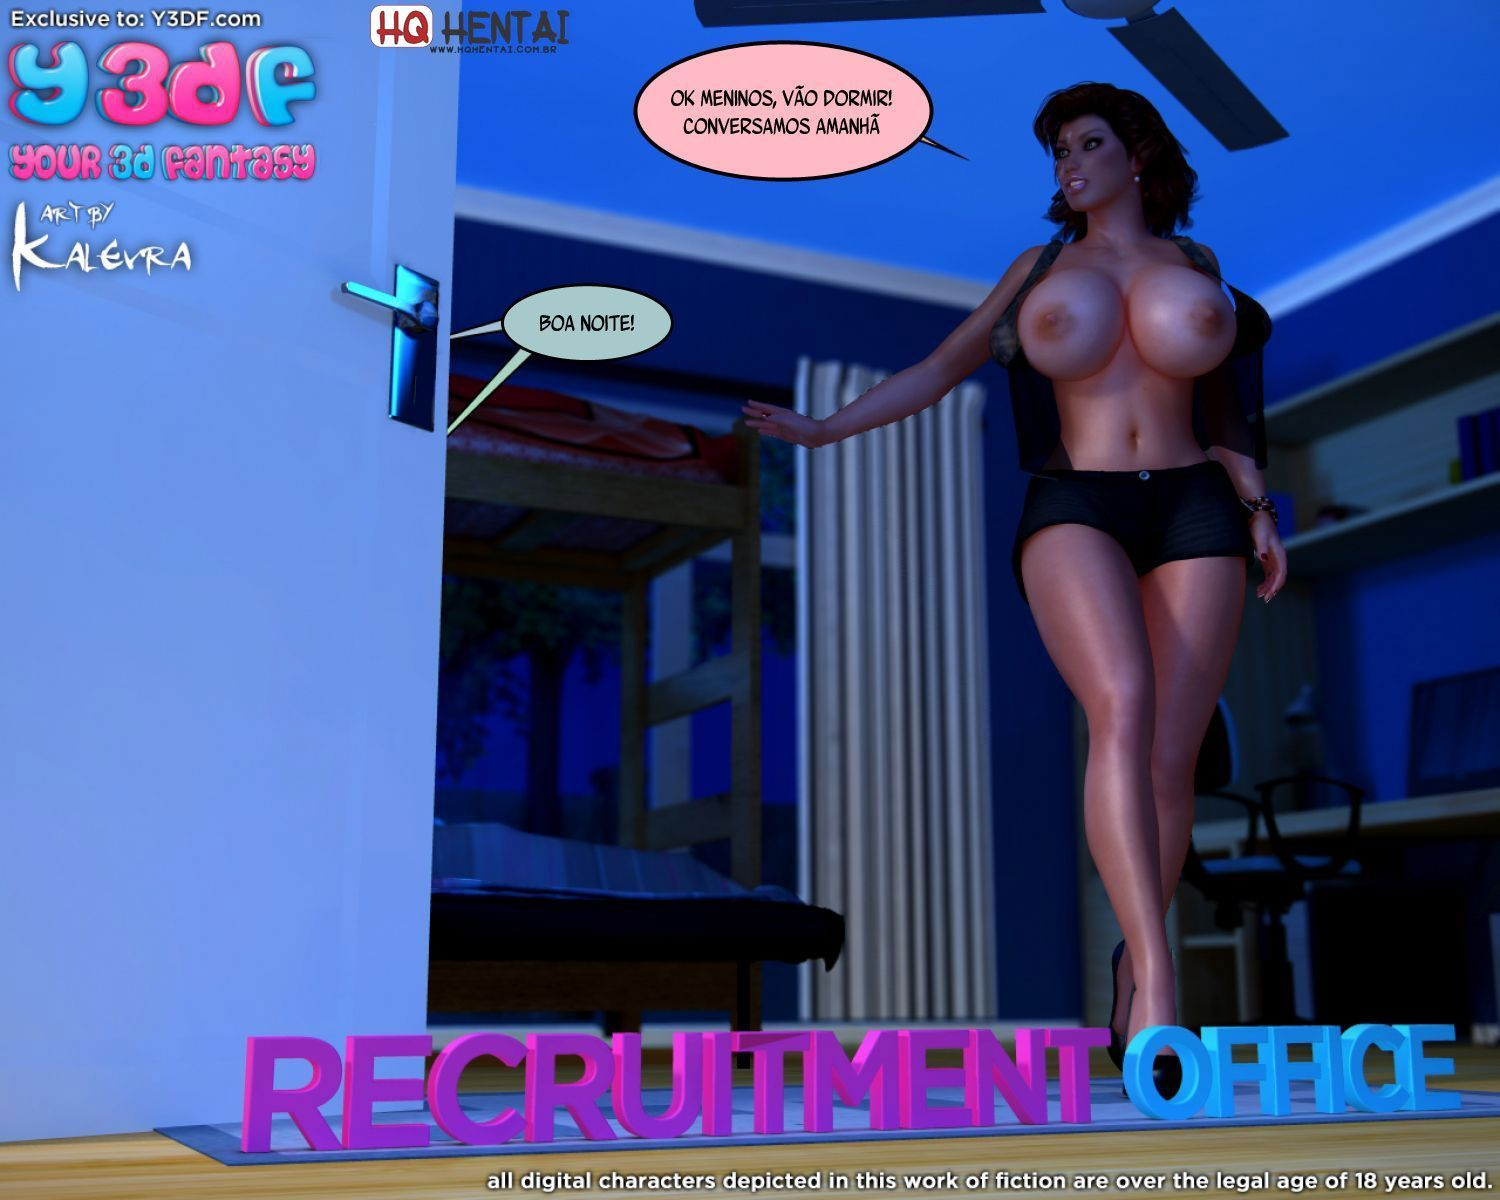 Recruitment office